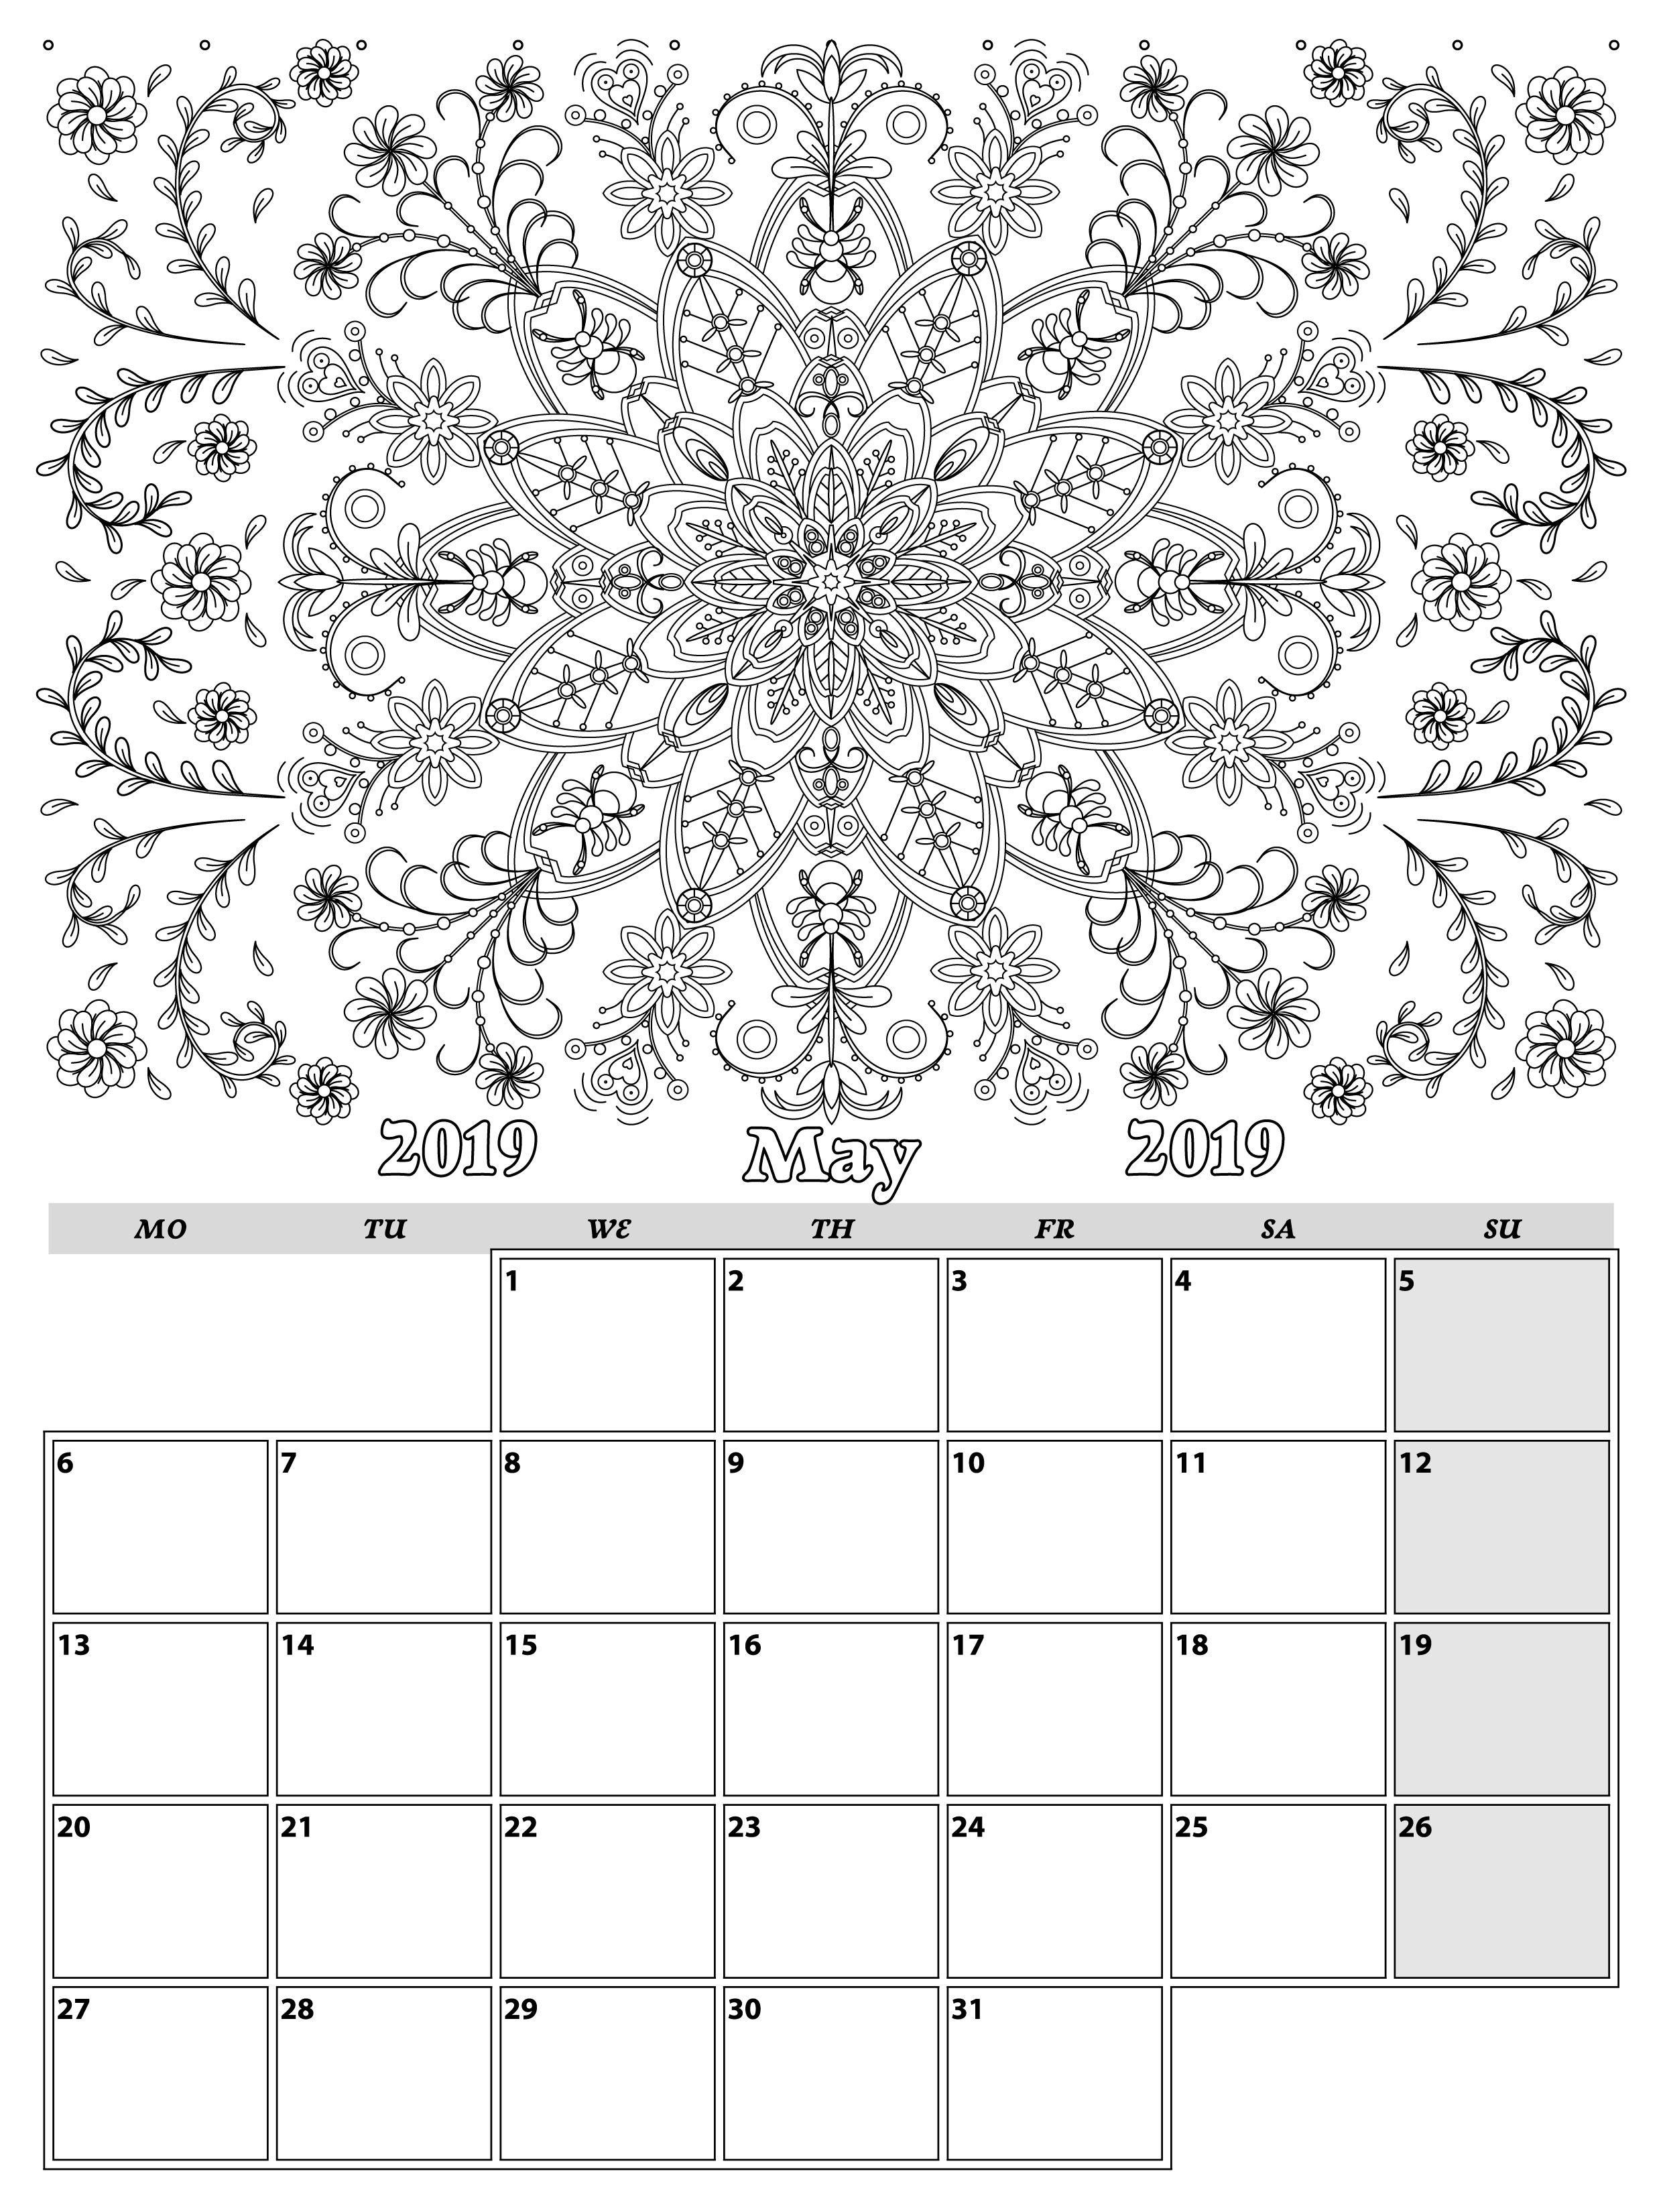 May. Monthly Planner 2019 In Doodle Style For Relax And Plan, Vector inside Doodle Monthly Planner Printer Templates